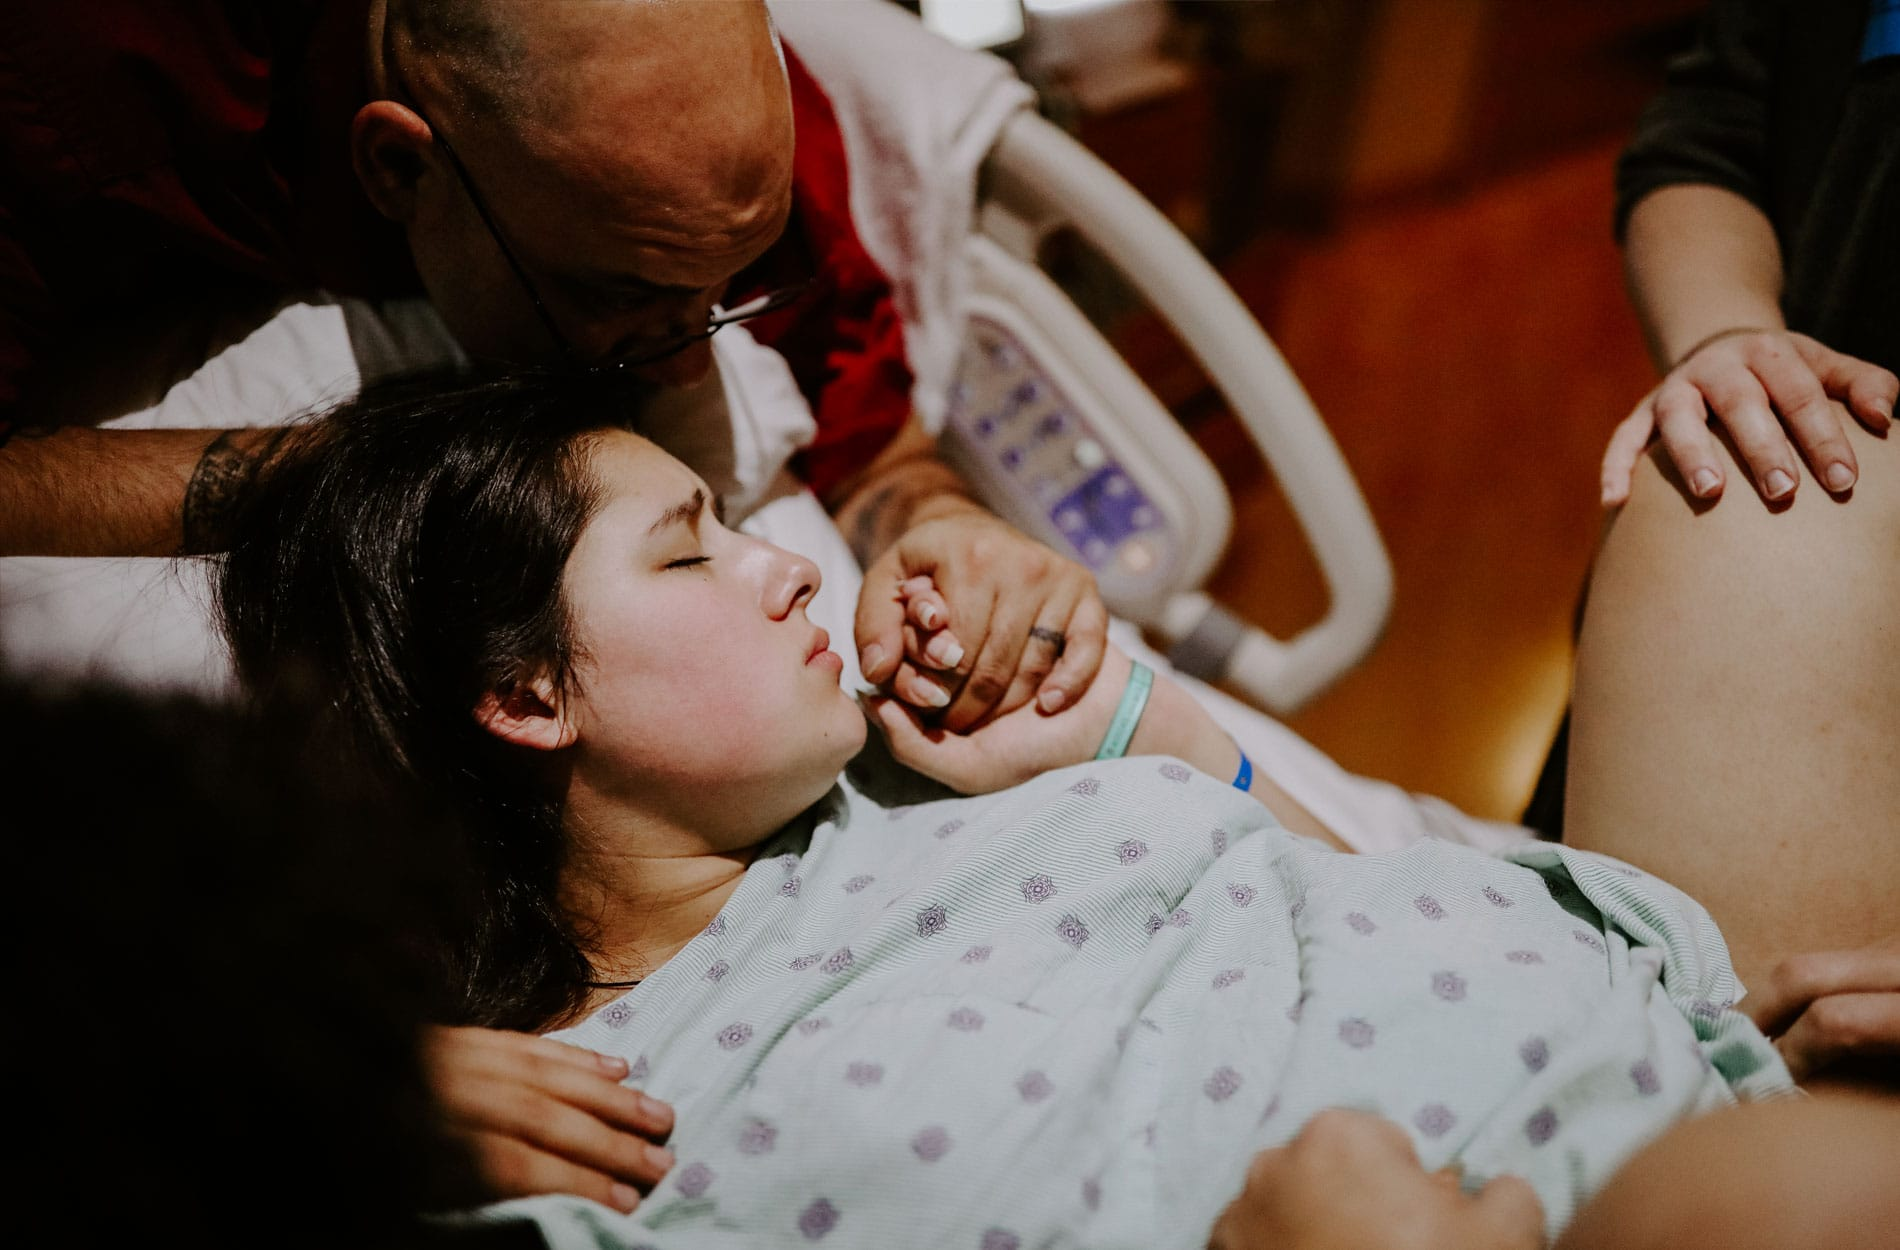 Birth Doula, man and woman holding hands during labor